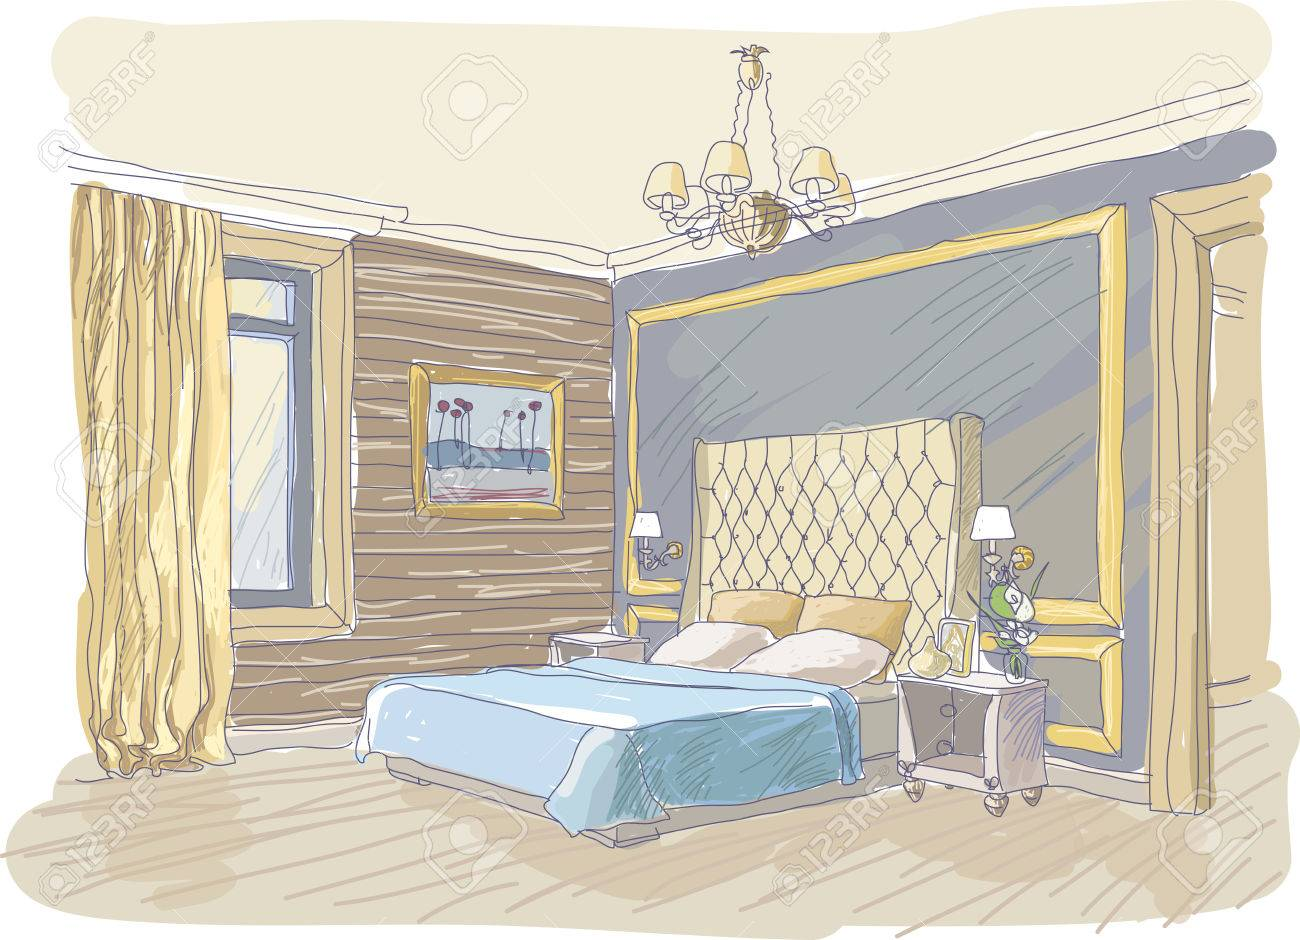 Bedroom drawing with color - Color Illustration Of Bedroom Interior Modern Style Stock Vector 41794604